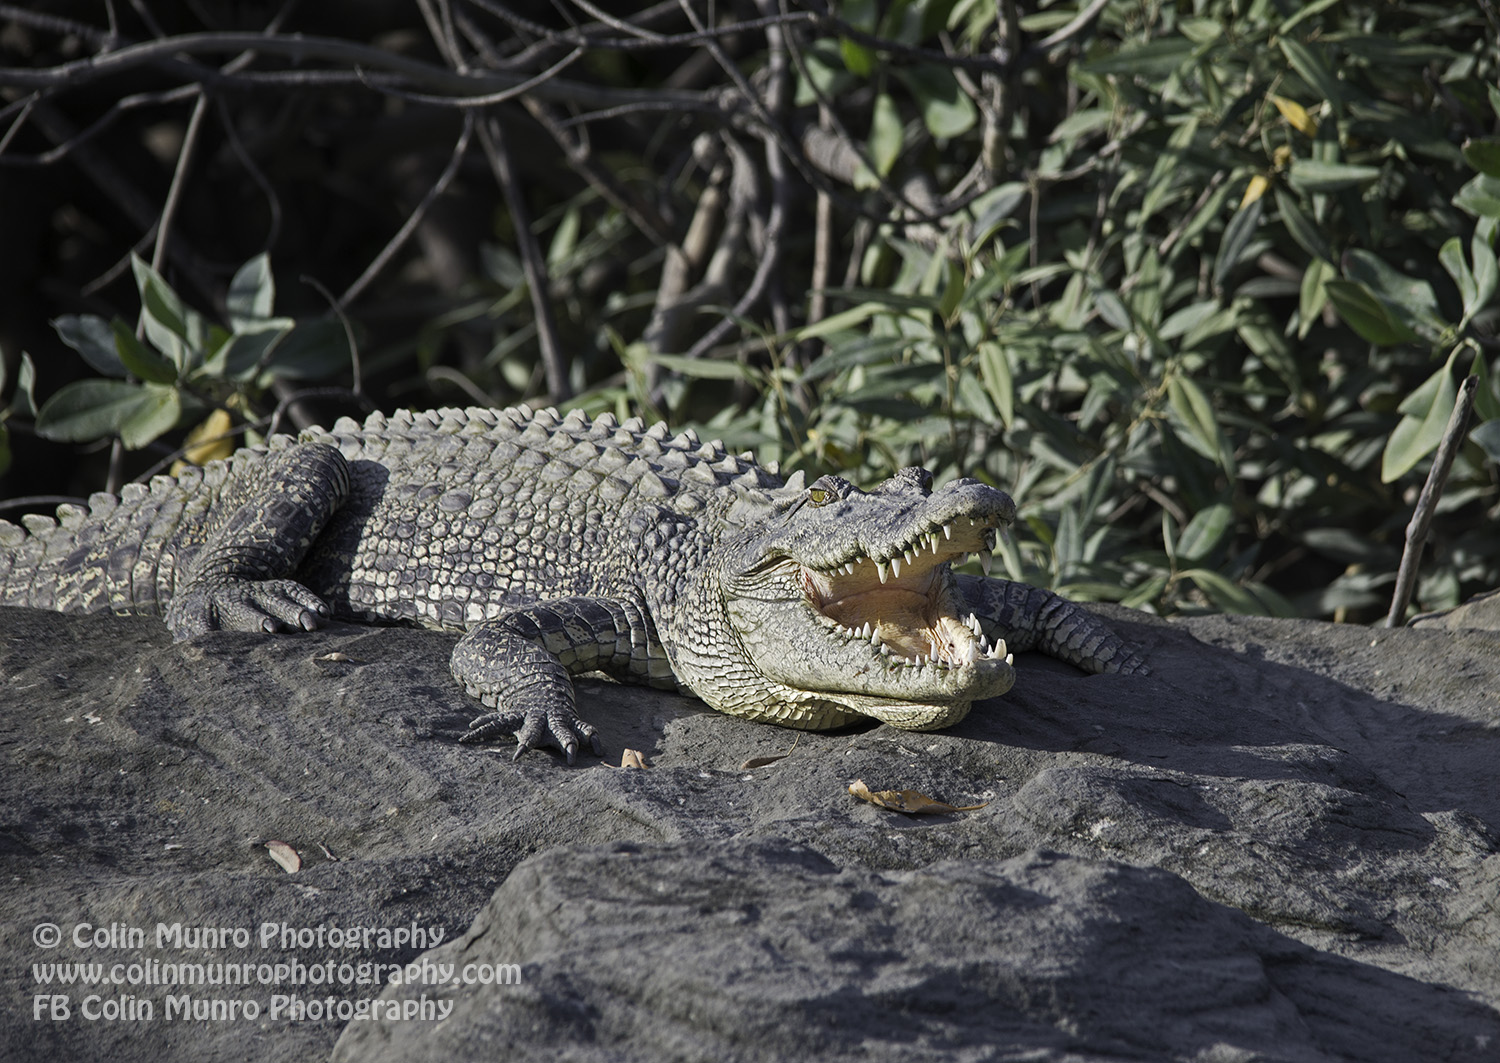 Saltwater crocodile basking on rocks, Hunter River, Kimberley